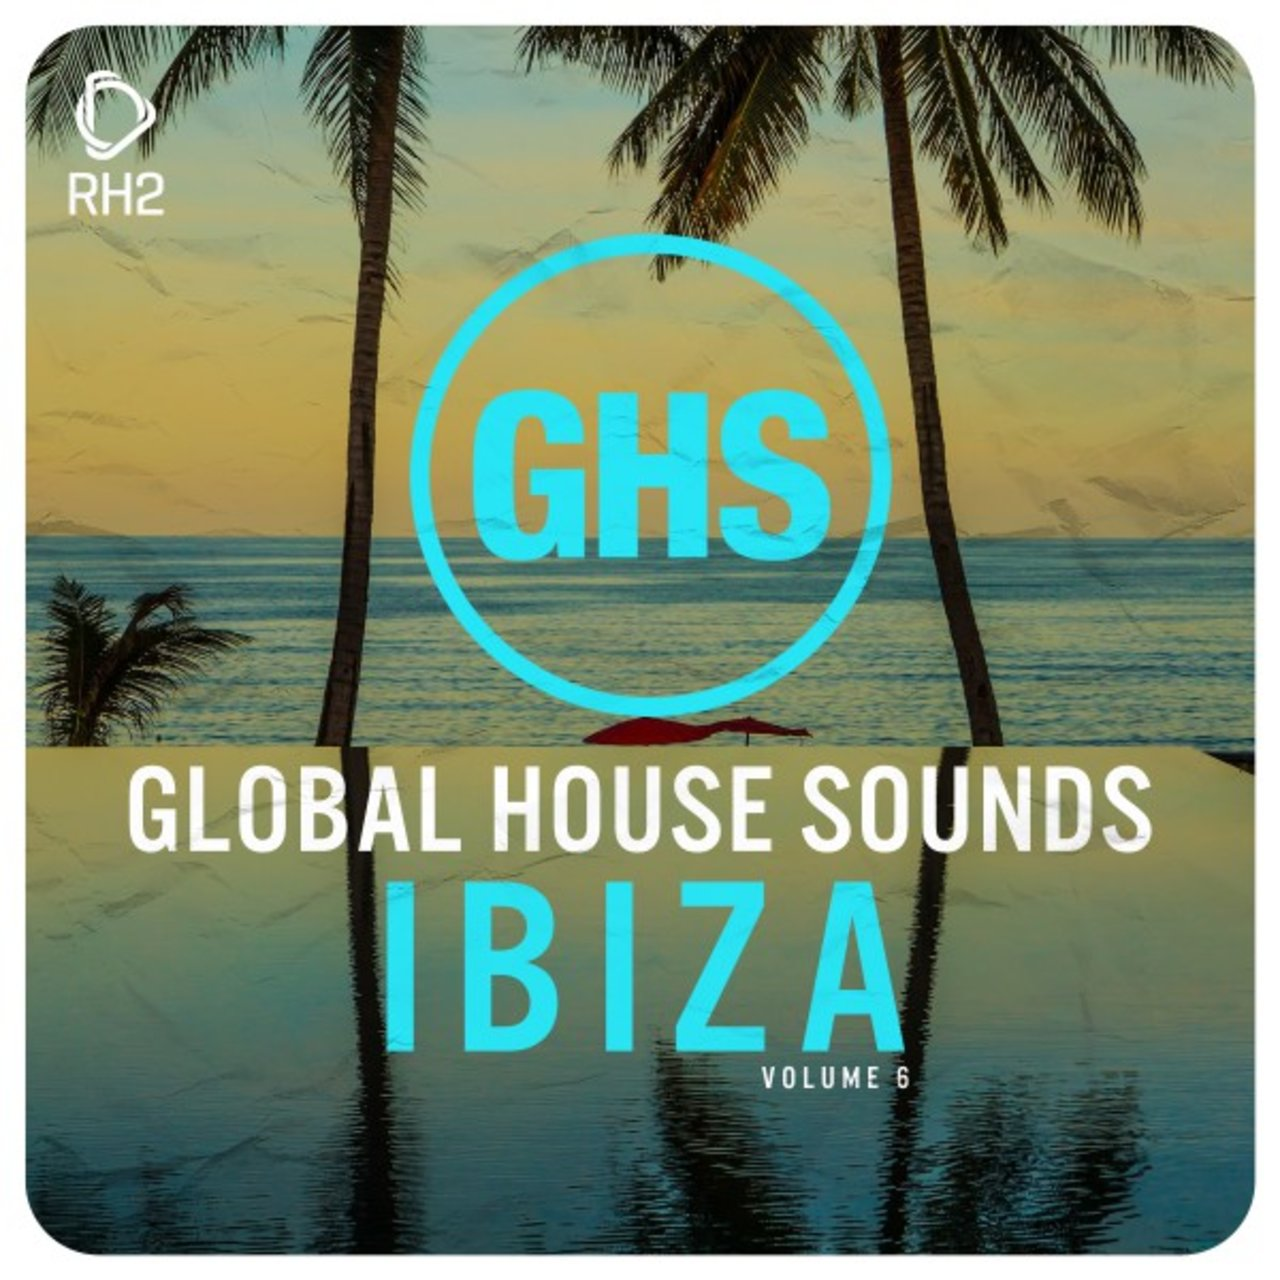 Global House Sounds - Ibiza, Vol. 6